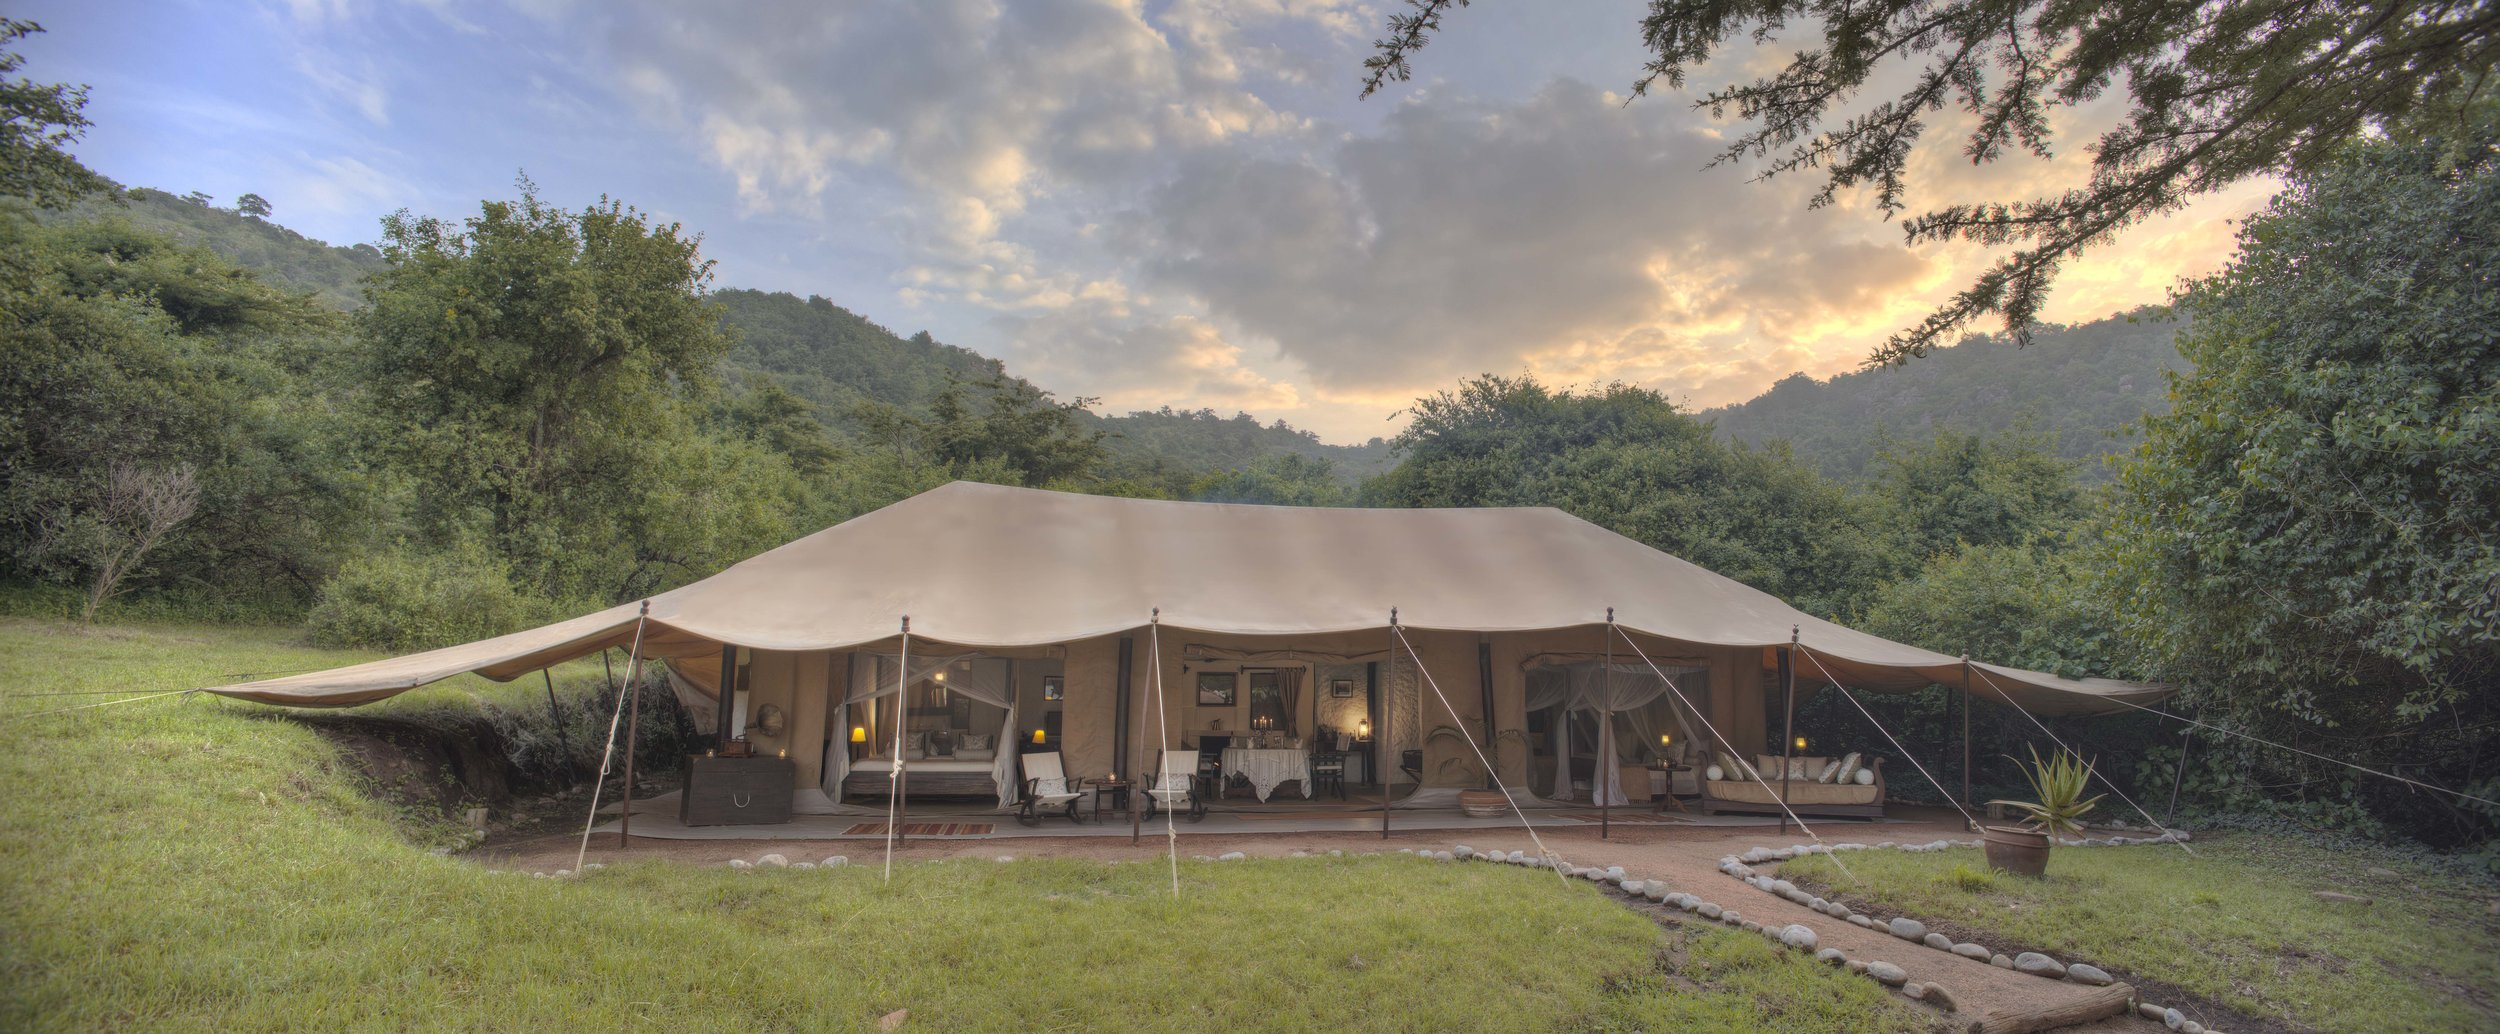 cottars_-_honeymoon_tent_outside.jpg